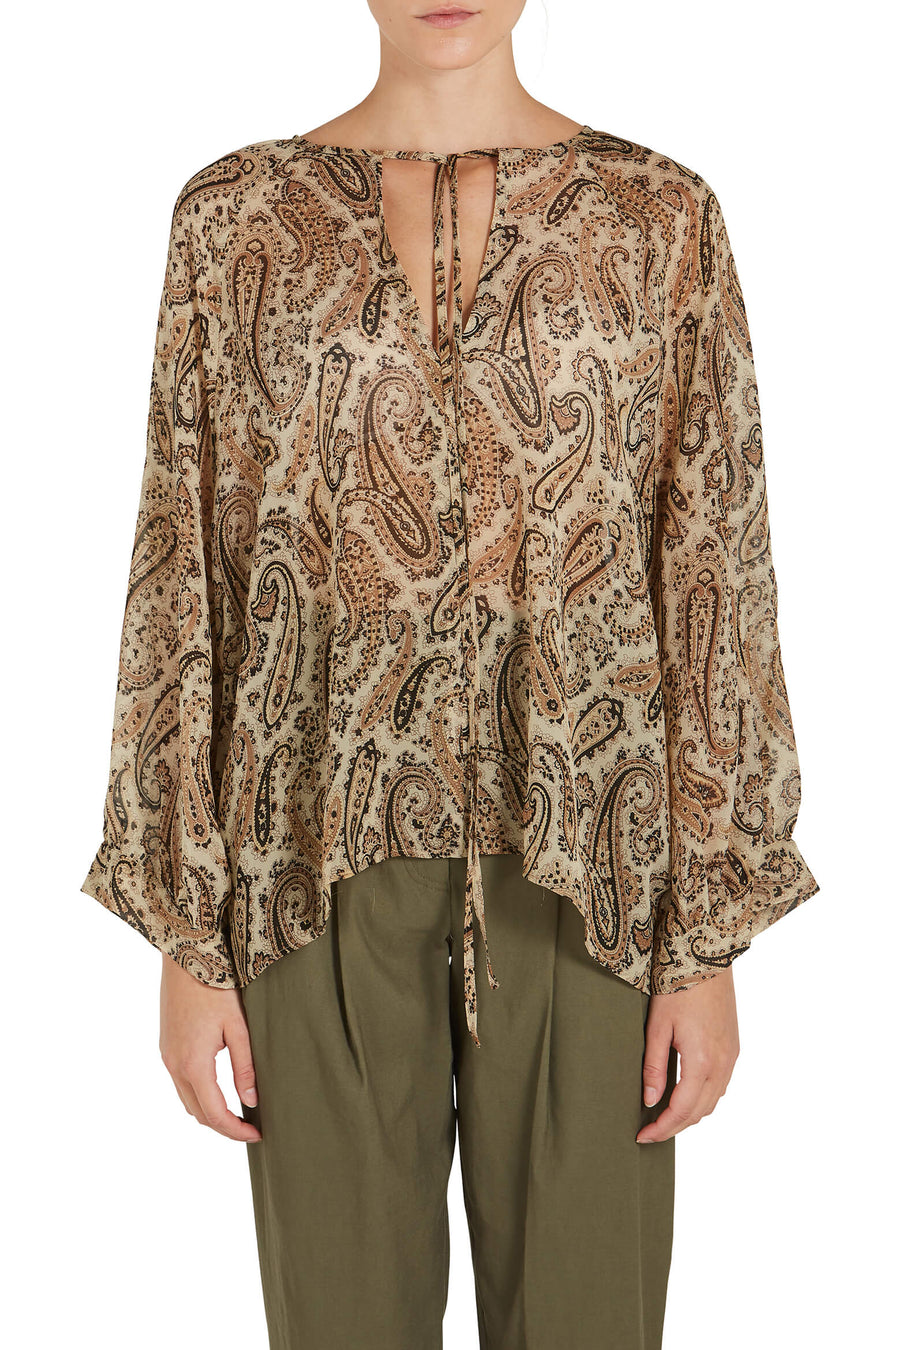 Nili Lotan Acadia Blouse from The New Trend